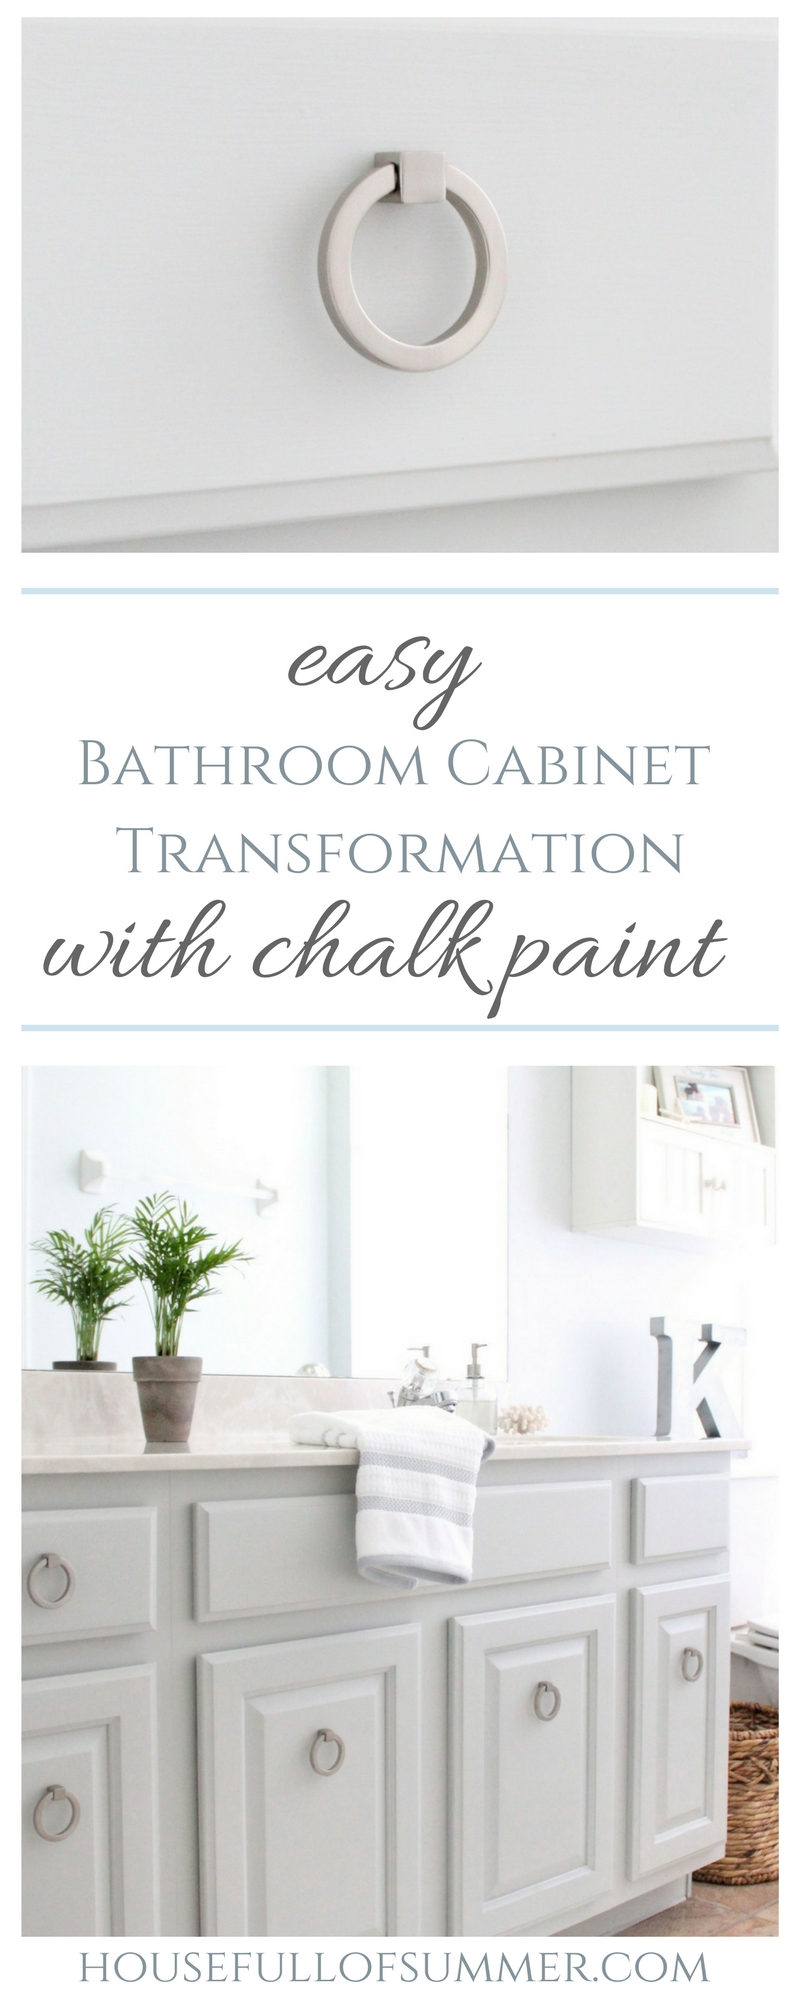 House Full of Summer - Easy Bathroom Cabinet Transformation with Chalk Paint - bathroom makeover, bathroom diy, chalk painting tips, top coat tips, how to keep painted cabinets from chipping or scratching, budget friendly home upgrades, before and after home